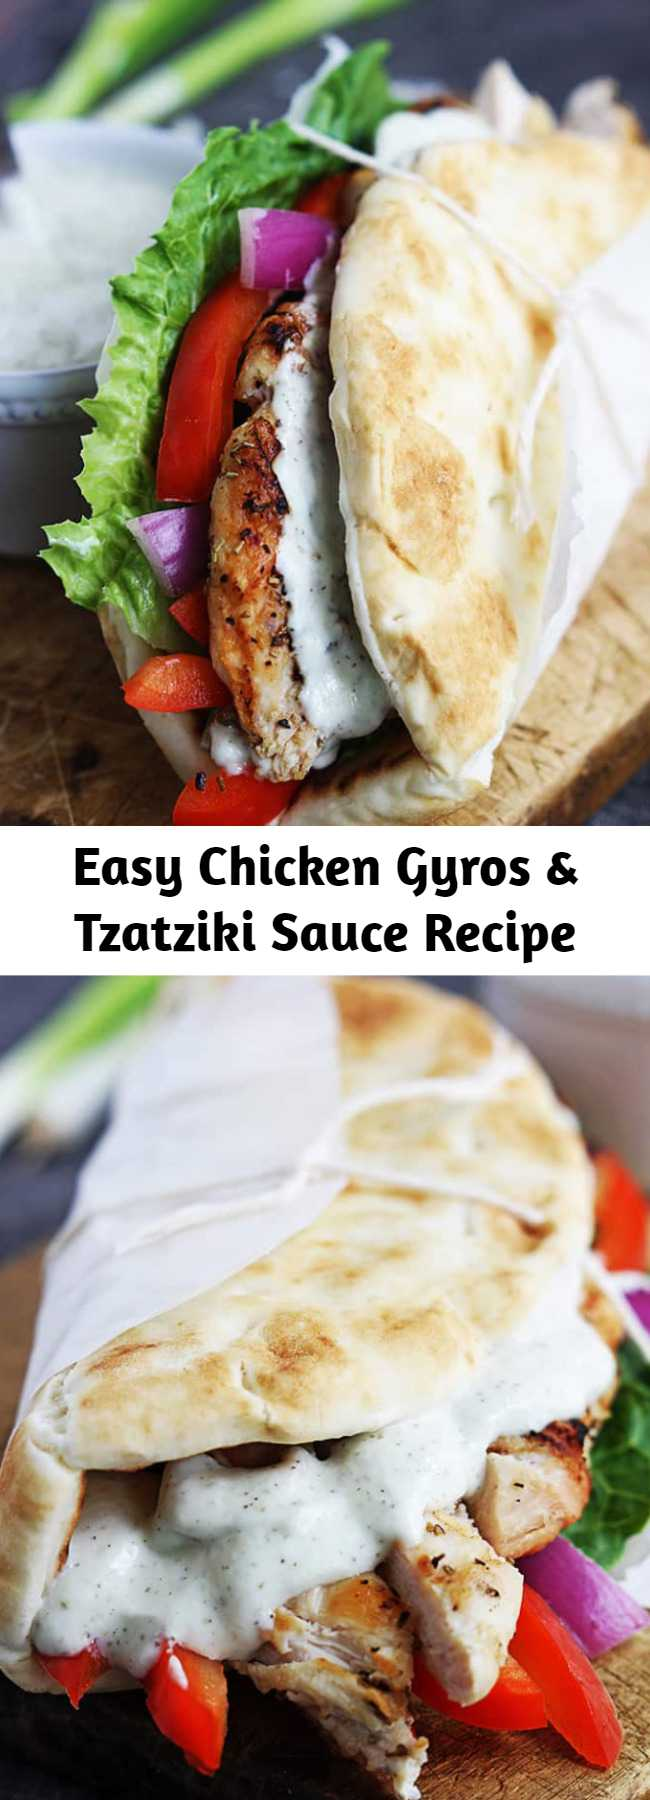 Easy Chicken Gyros & Tzatziki Sauce Recipe - Quick Greek-style chicken gyros you can whip up on busy nights in just 20 minutes, these are a family favorite!